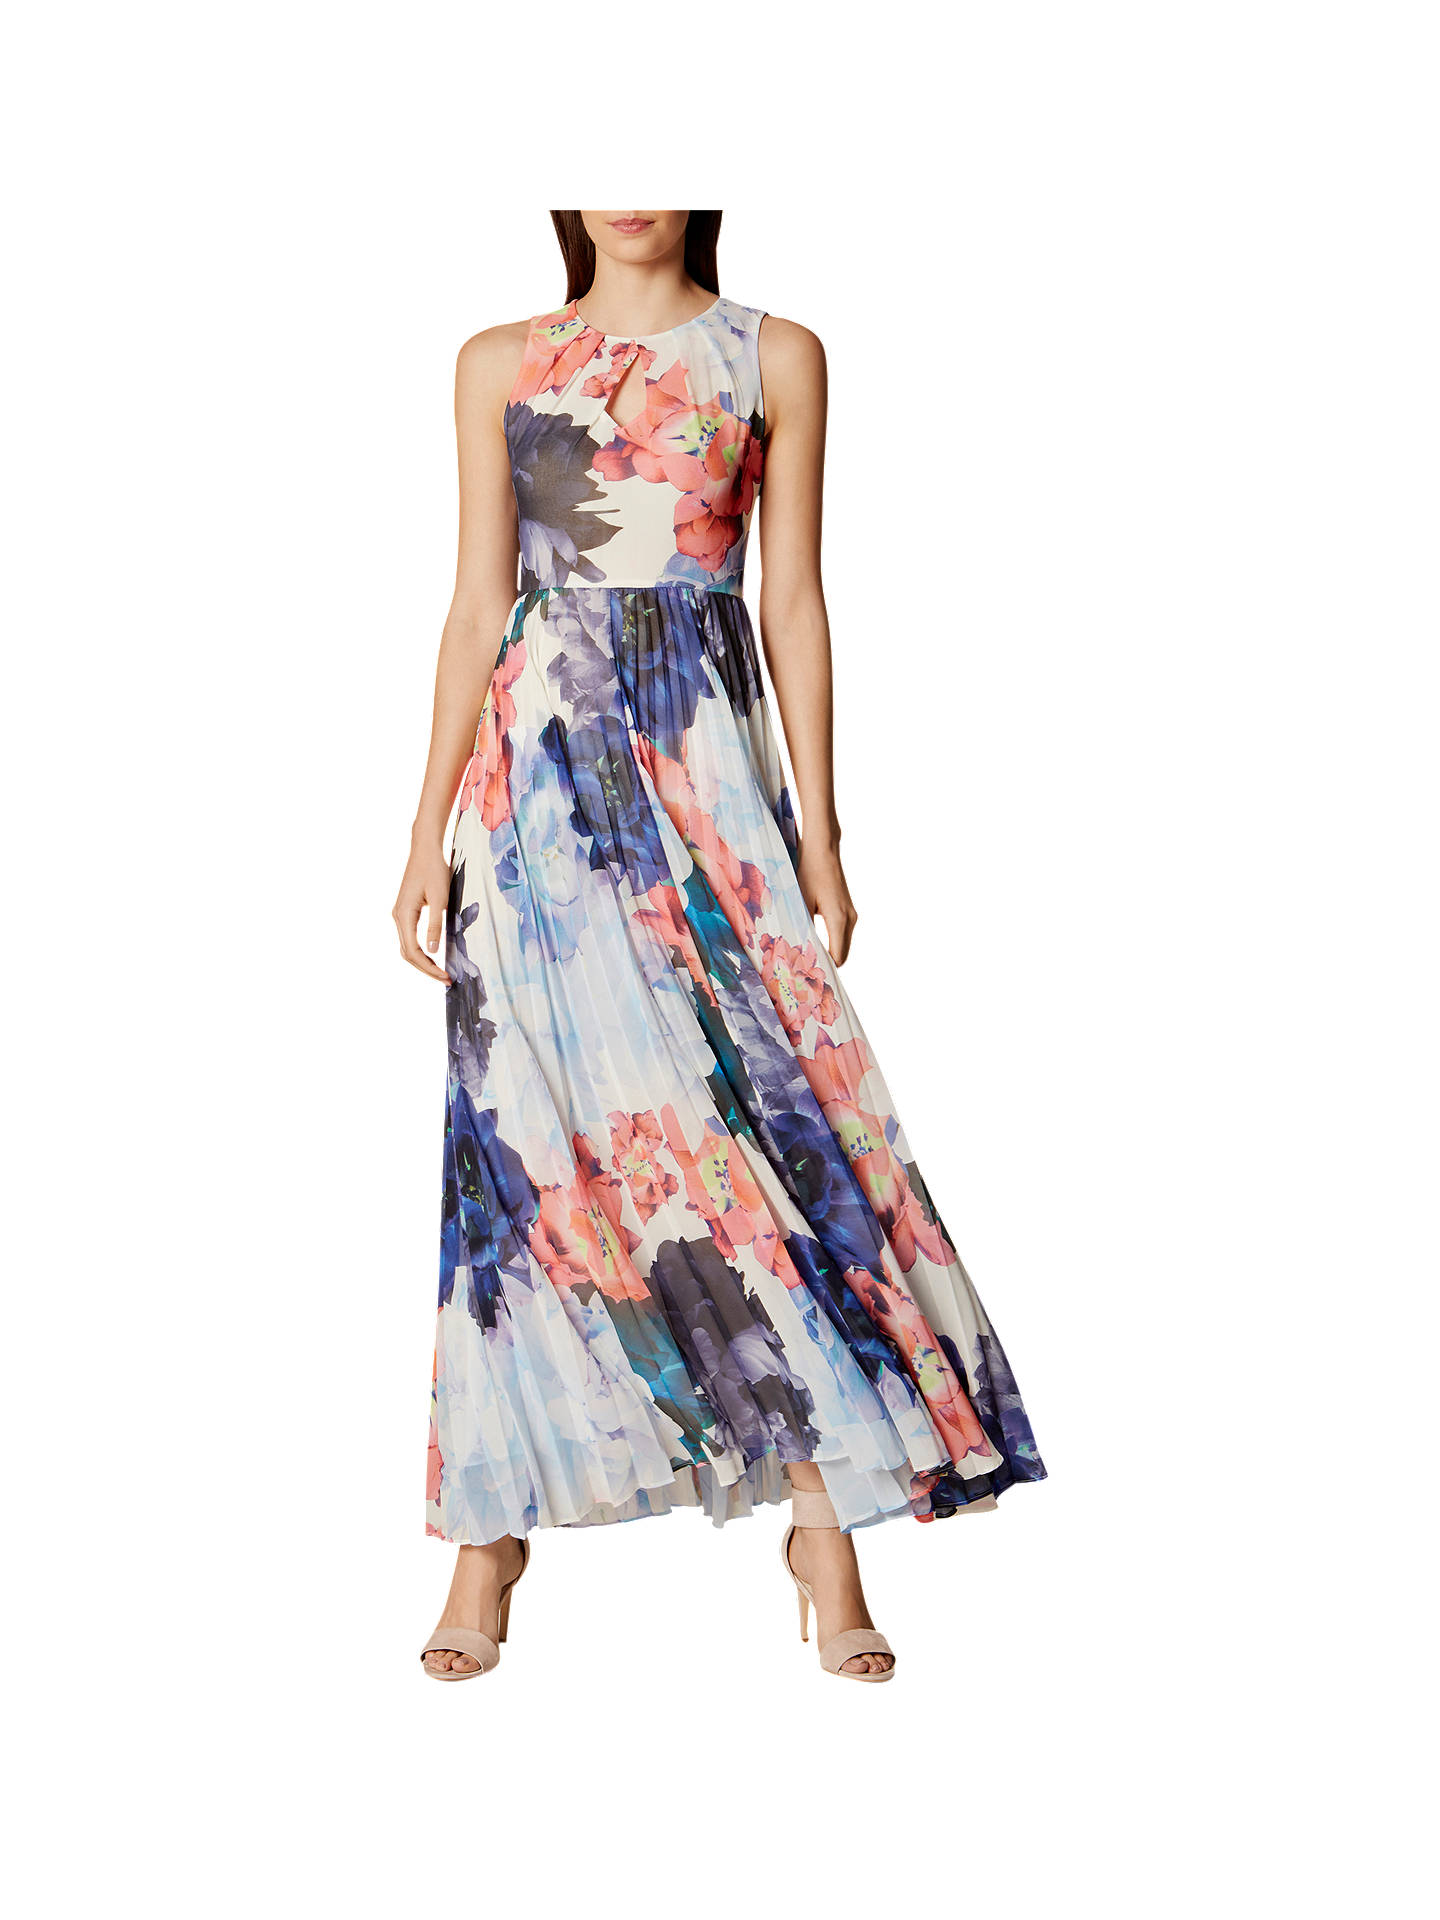 2f5561ae4 Buy Karen Millen Floral Pleated Maxi Dress, Multi, 6 Online at  johnlewis.com ...